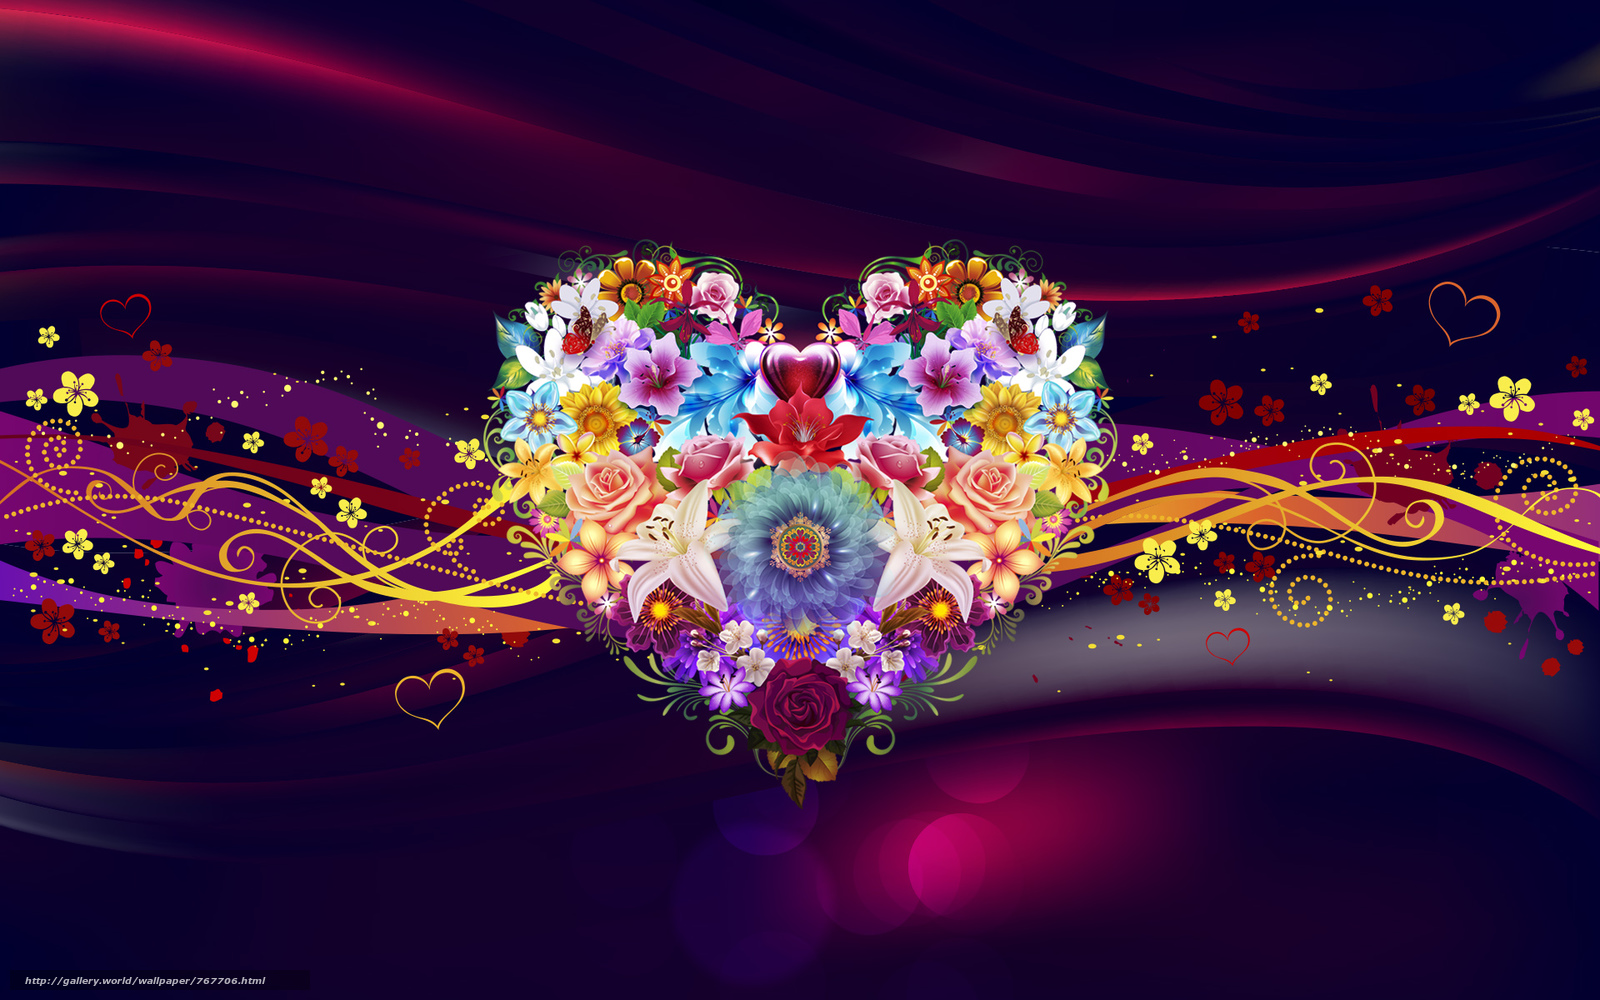 heart, a heart, flowers, abstraction, wallpapers